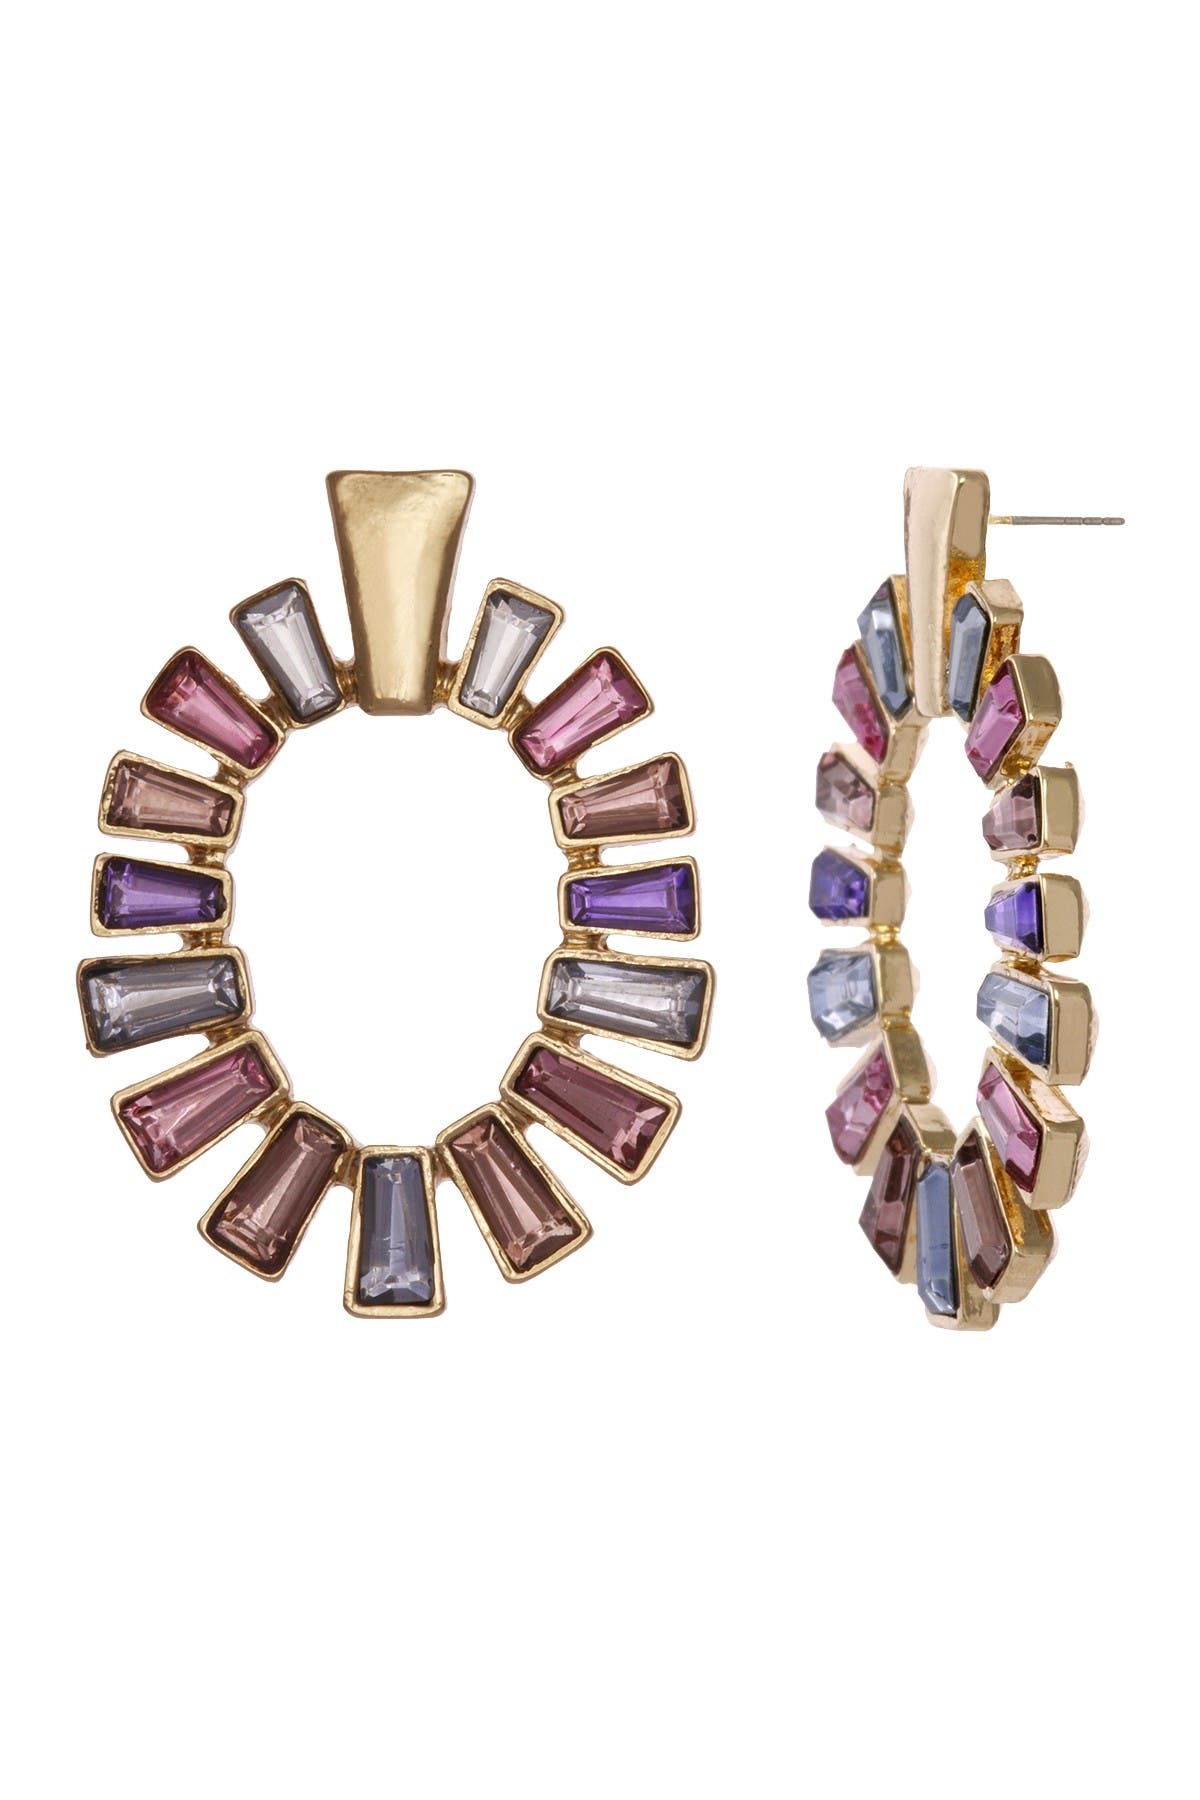 Image of Christian Siriano New York Multi Colored Baguette Stone Circular Drop Earrings